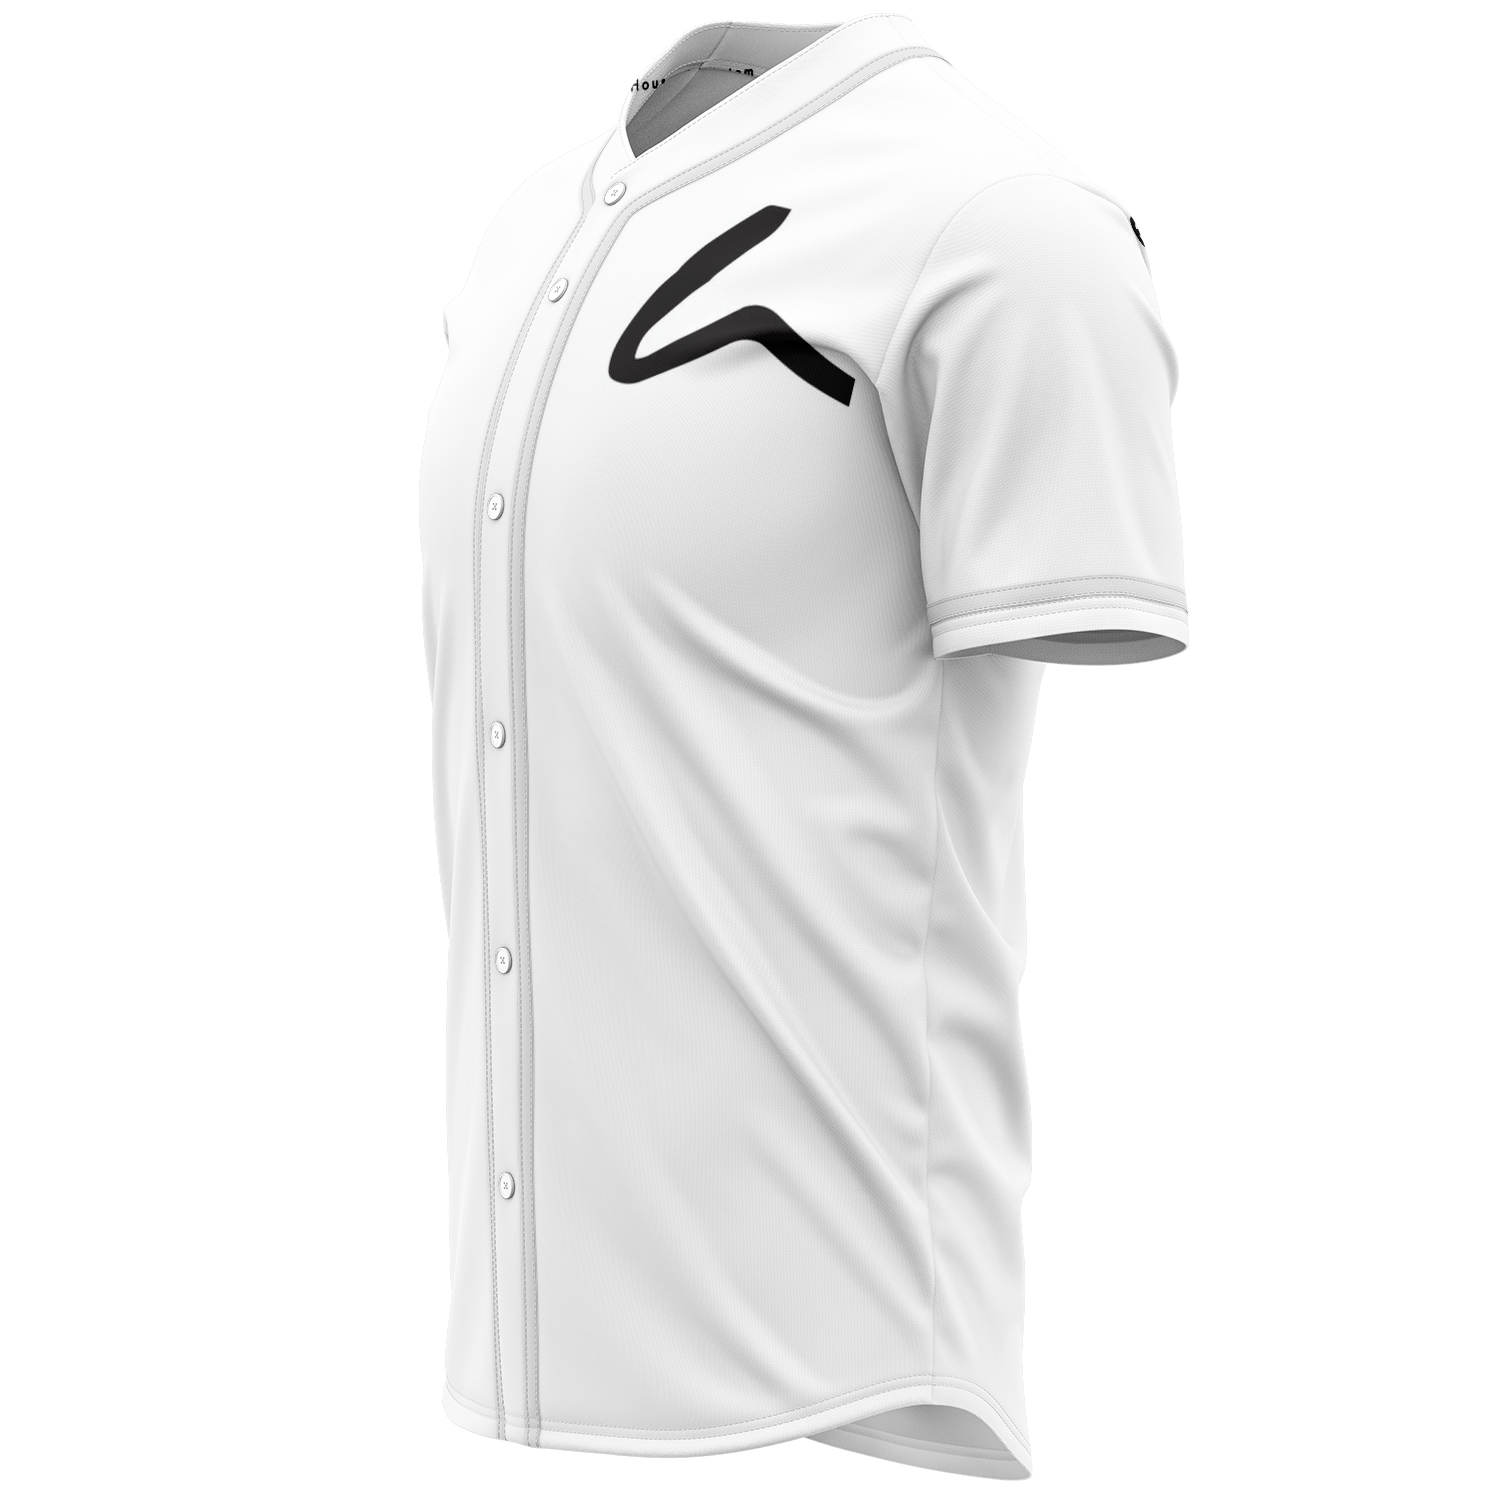 House Of Artem Classic White Baseball Jersey